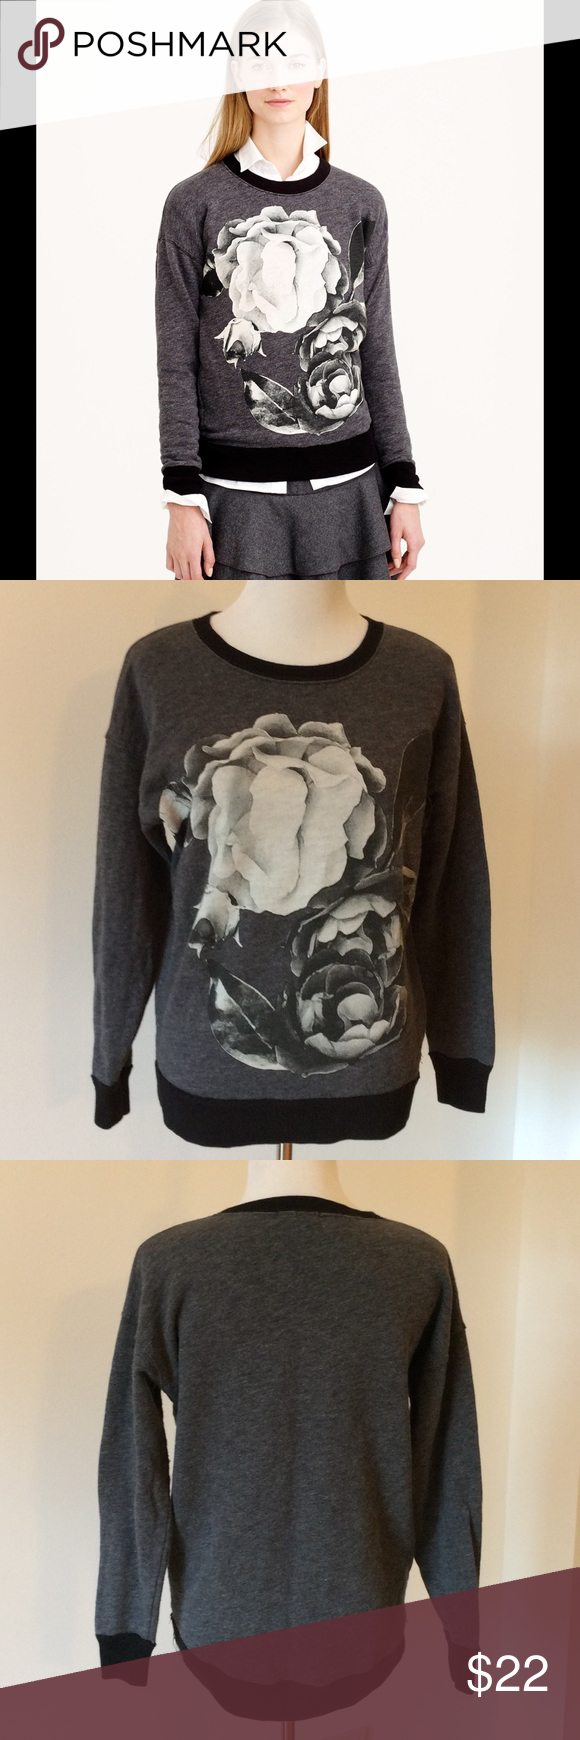 J Crew Oversize Sweatshirt *last markdown * Very good condition. Comfy cute photo crew J. Crew Tops Sweatshirts & Hoodies